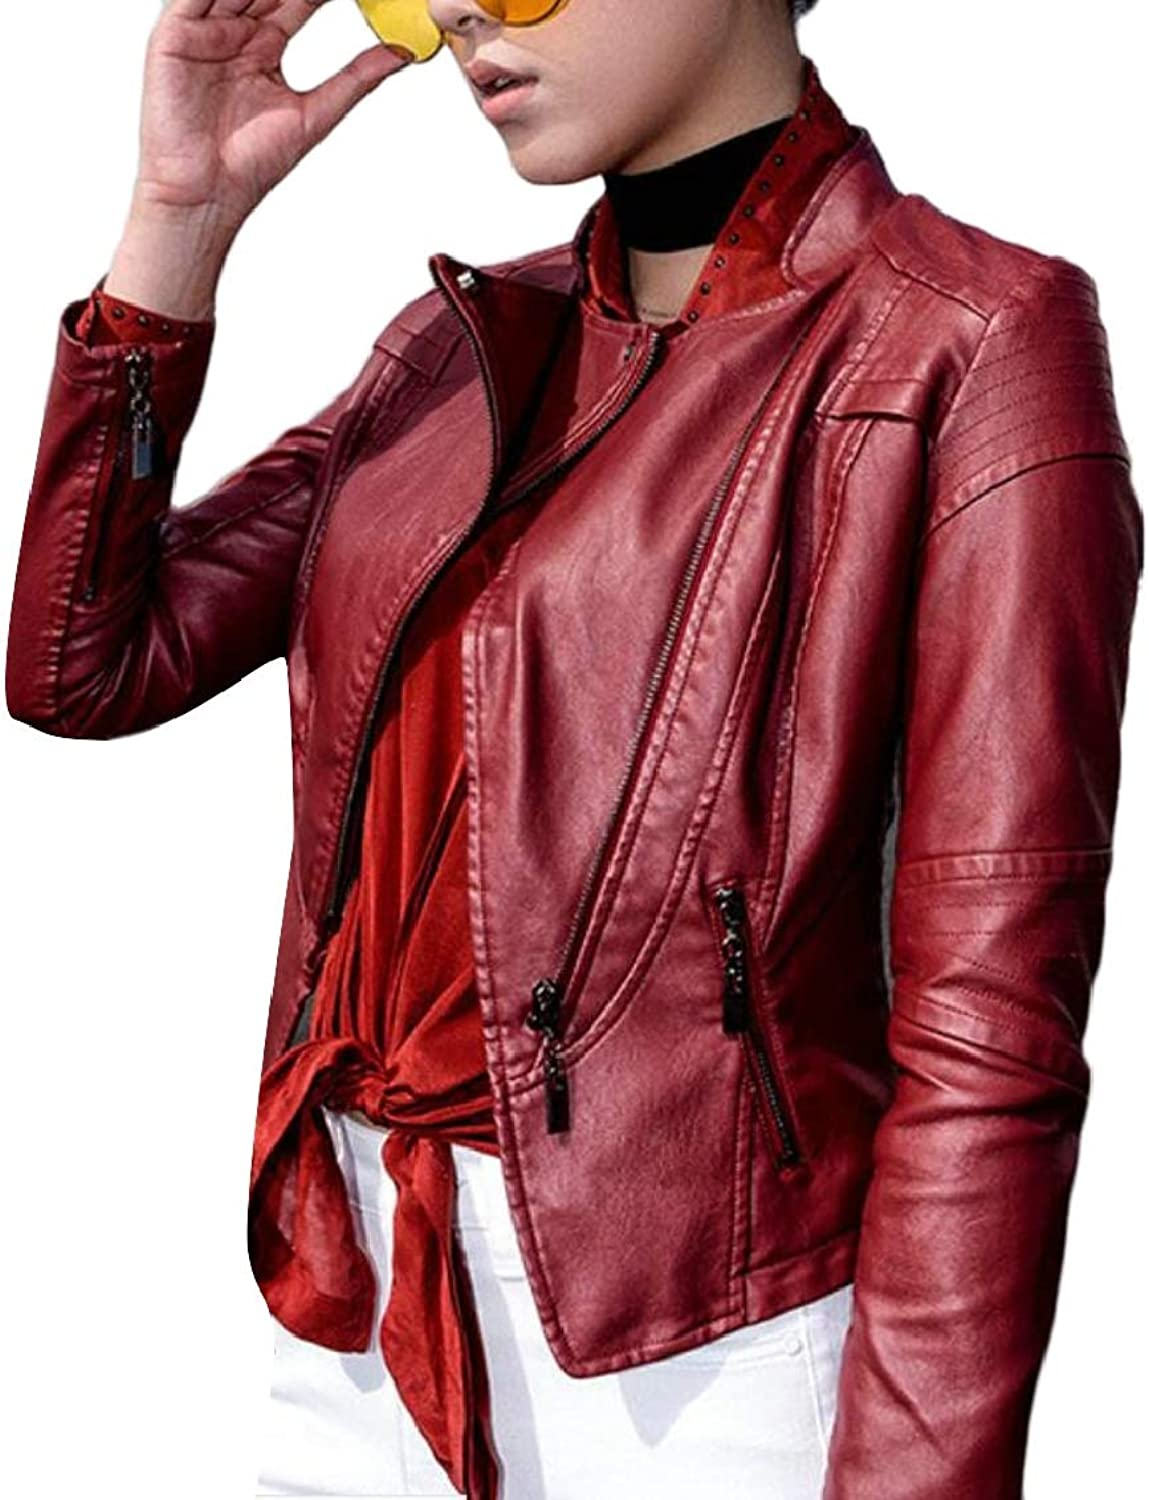 TDCACA Womens Faux Leather Solid Slim Motorcycle Short Jacket Outwear